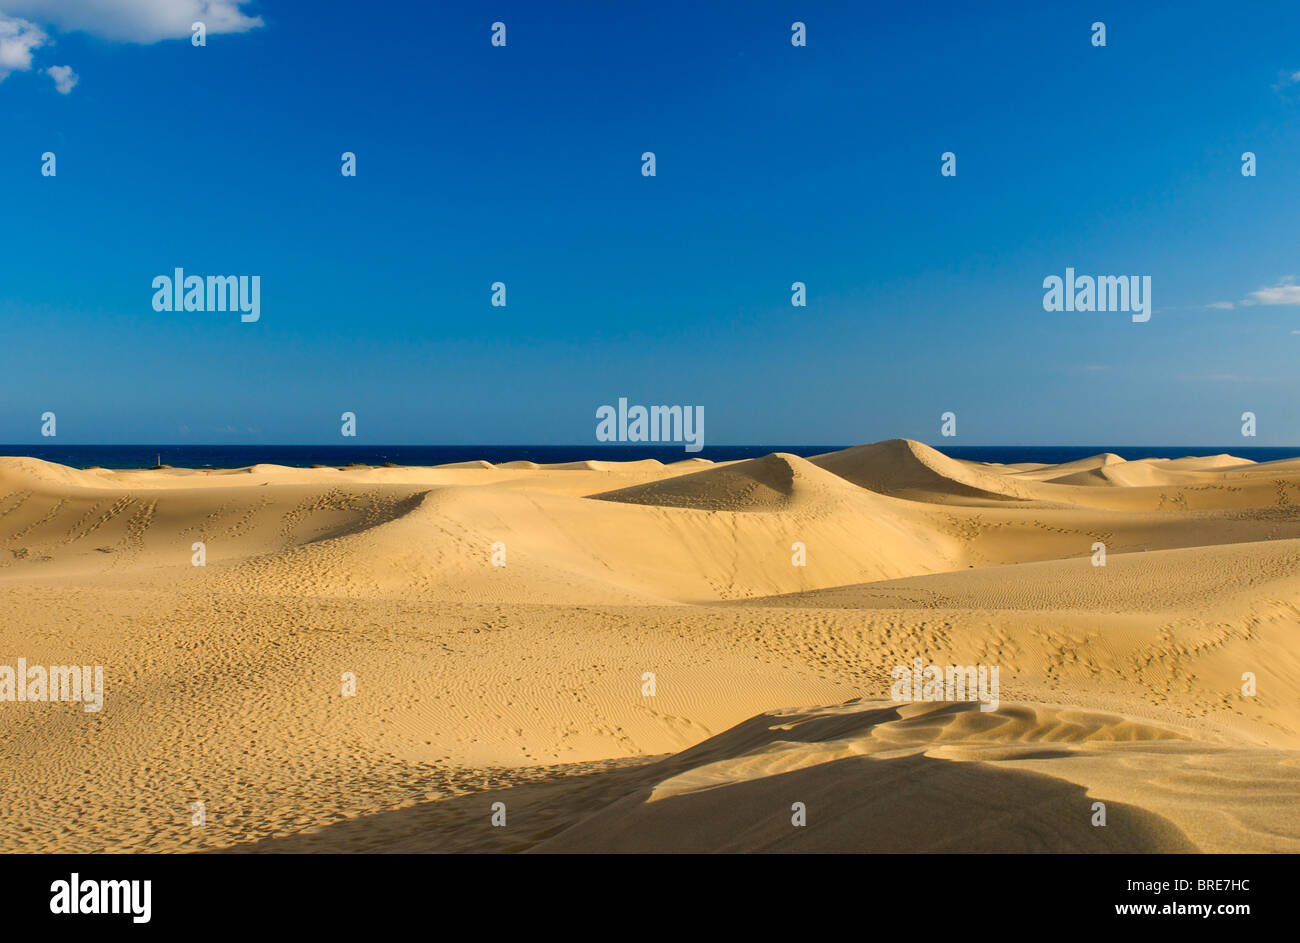 Sand dunes of Maspalomas, Gran Canaria, Canary Islands, Spain - Stock Image